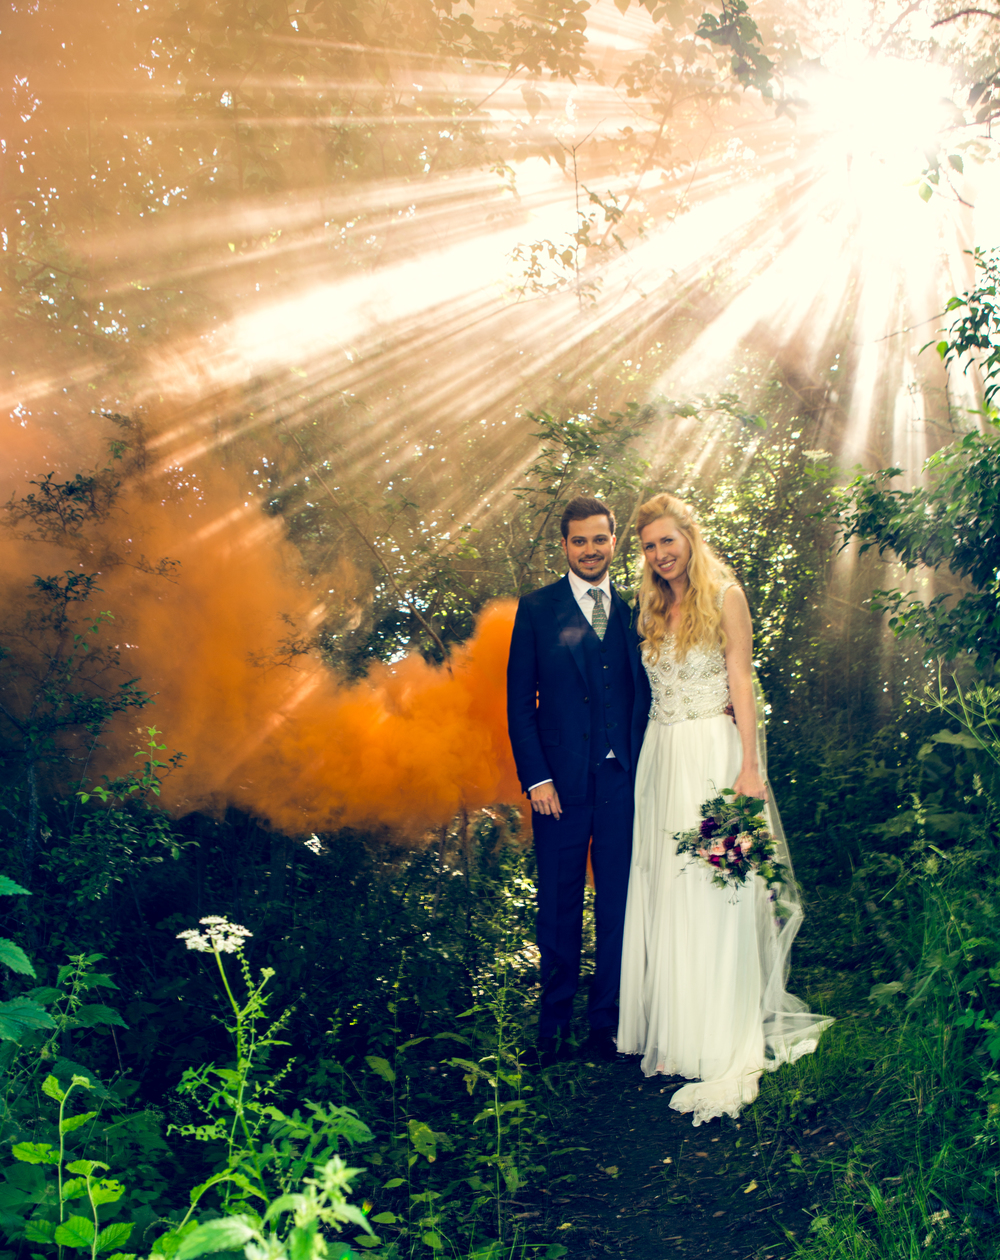 ... ruth-stolerman-interior-design-pw-images-elite-tents- ...  sc 1 st  Plans and Presents & A Beautiful Handmade Woodland Wedding in the Cotswolds - UK ...